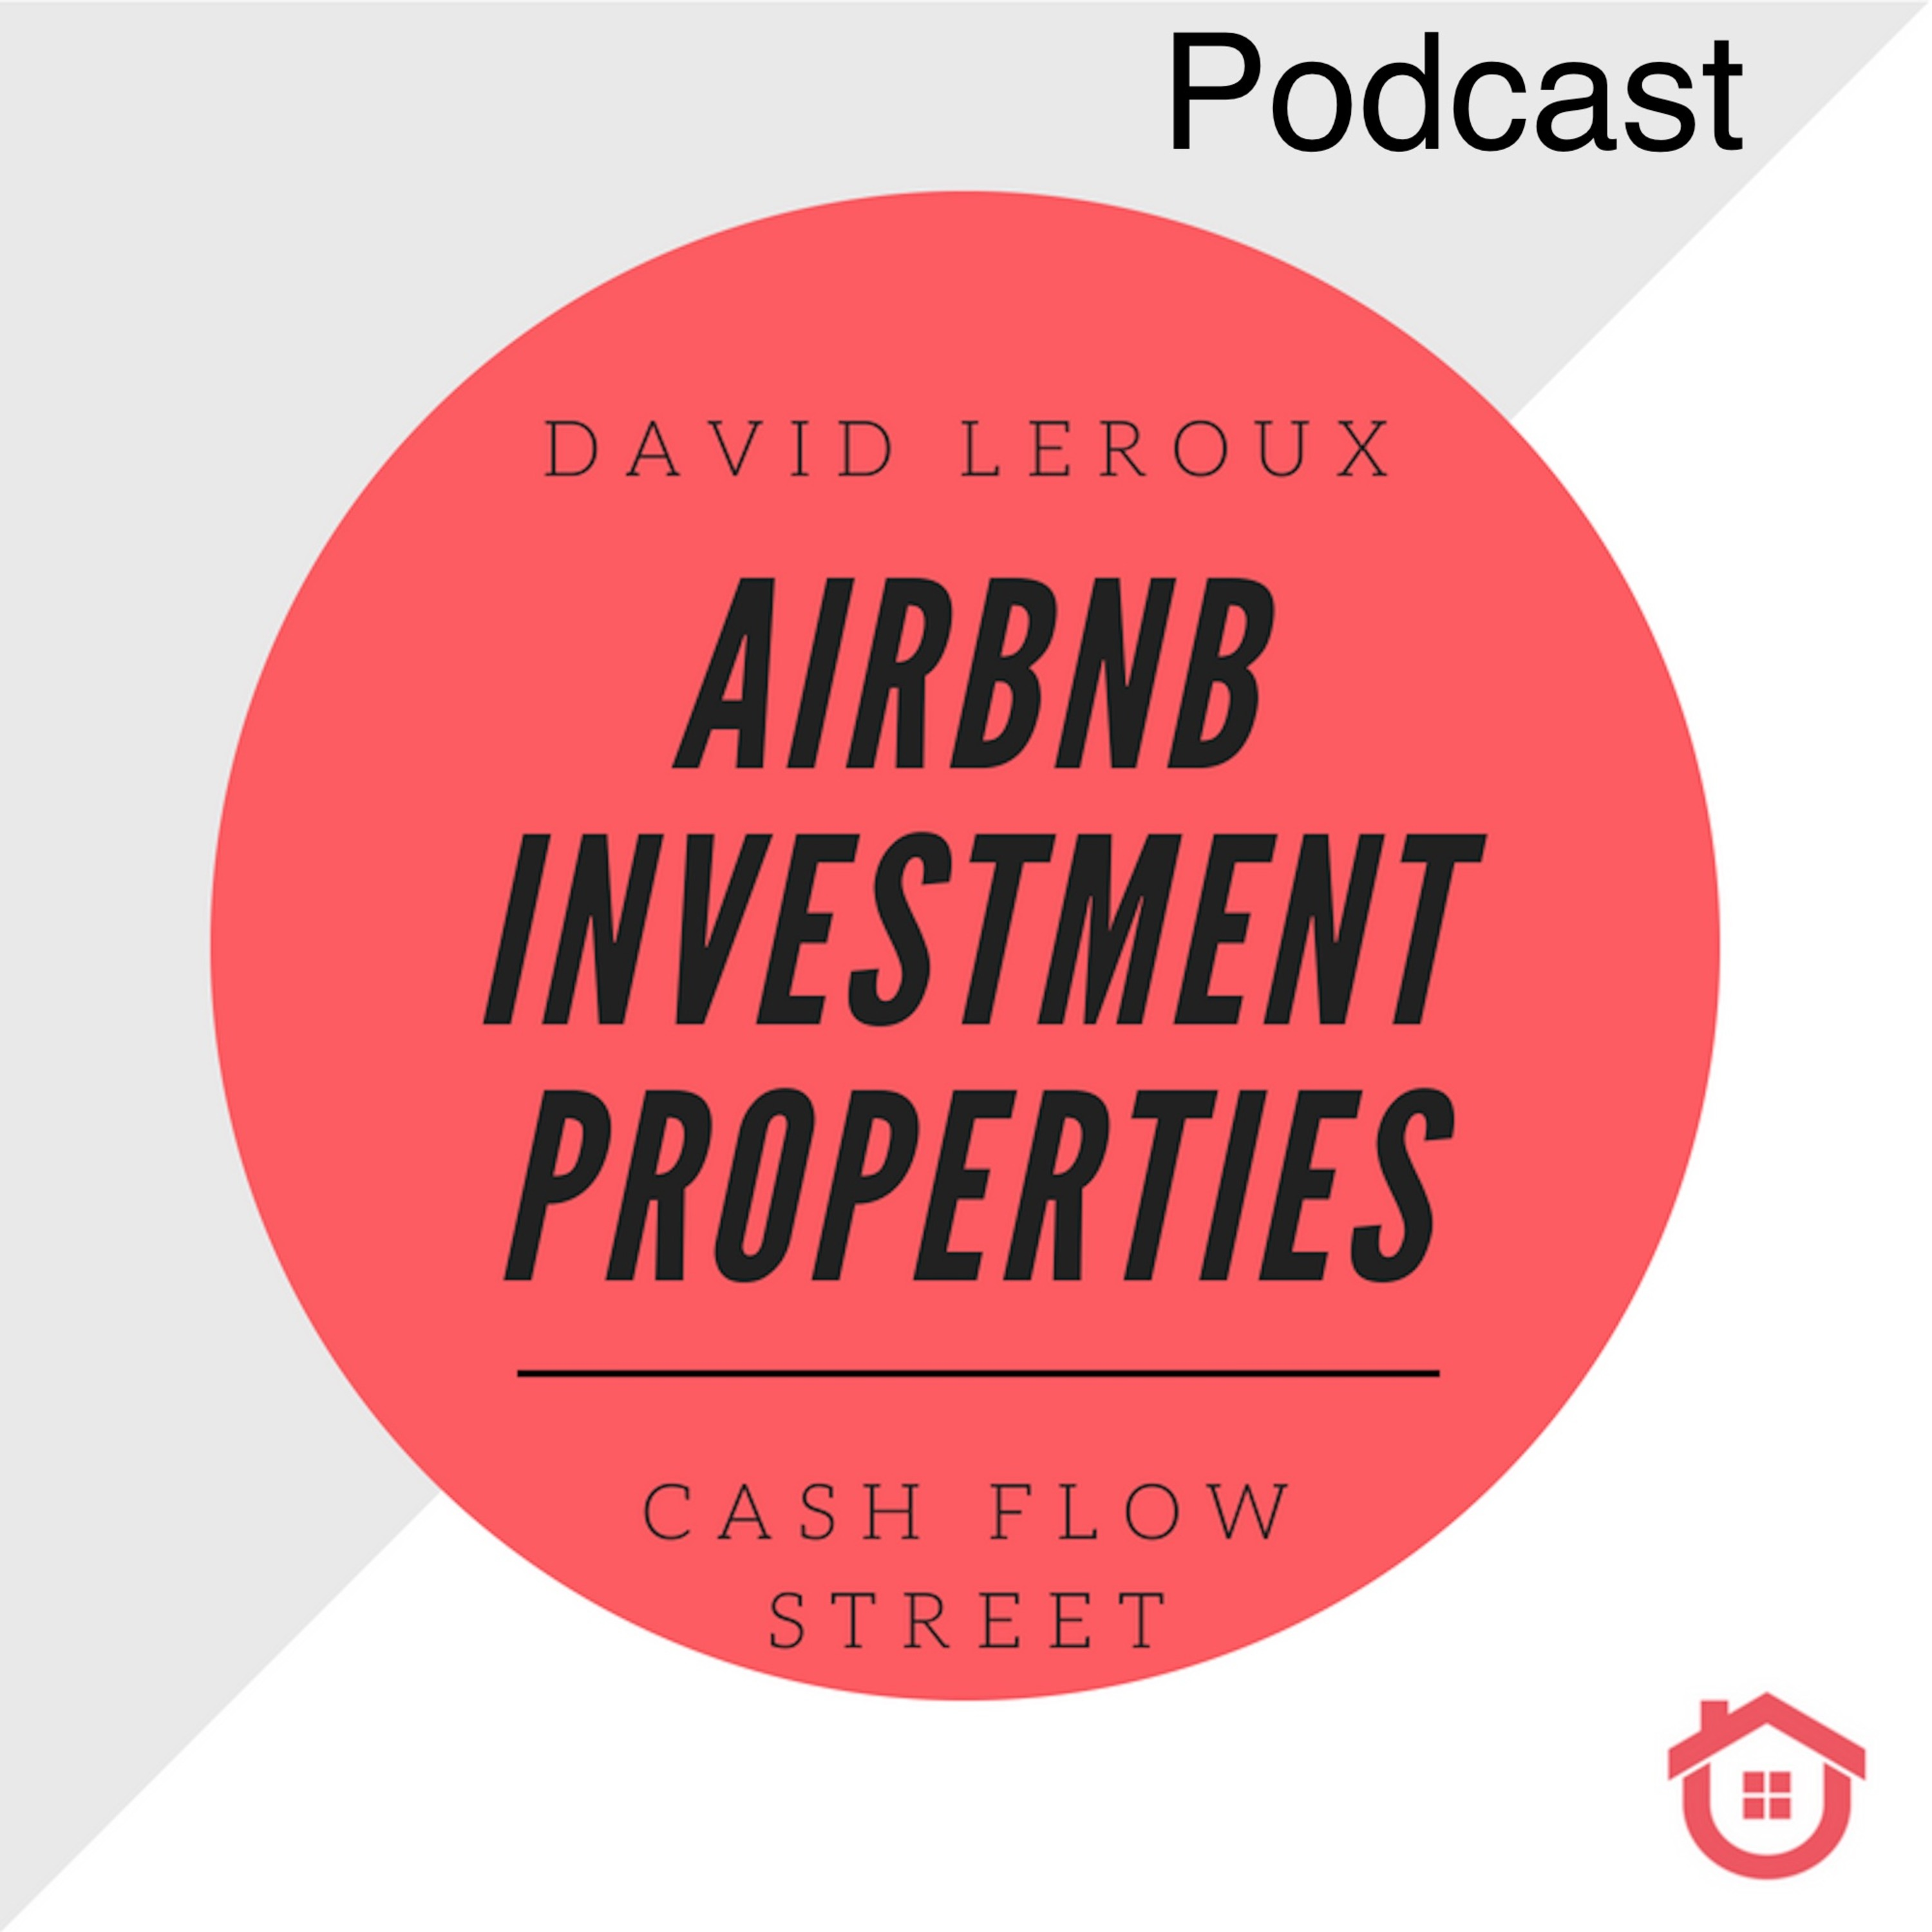 Episode 63: 3 tips to scale your Airbnb empire